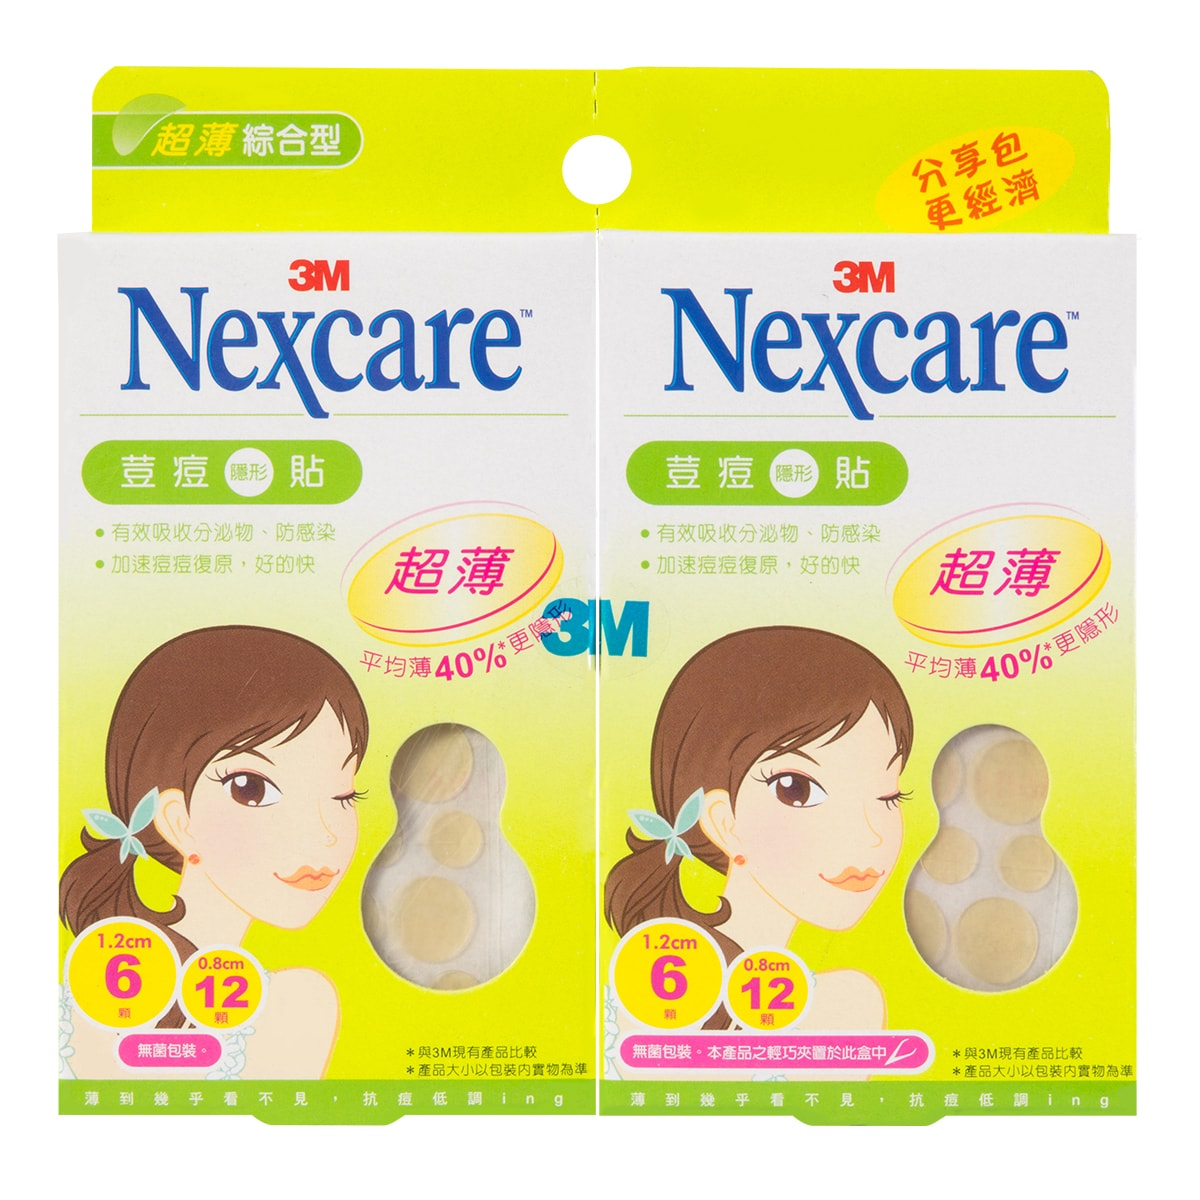 3M NEXCARE Acne Dressing -2 size Mix Pack 36 pcs